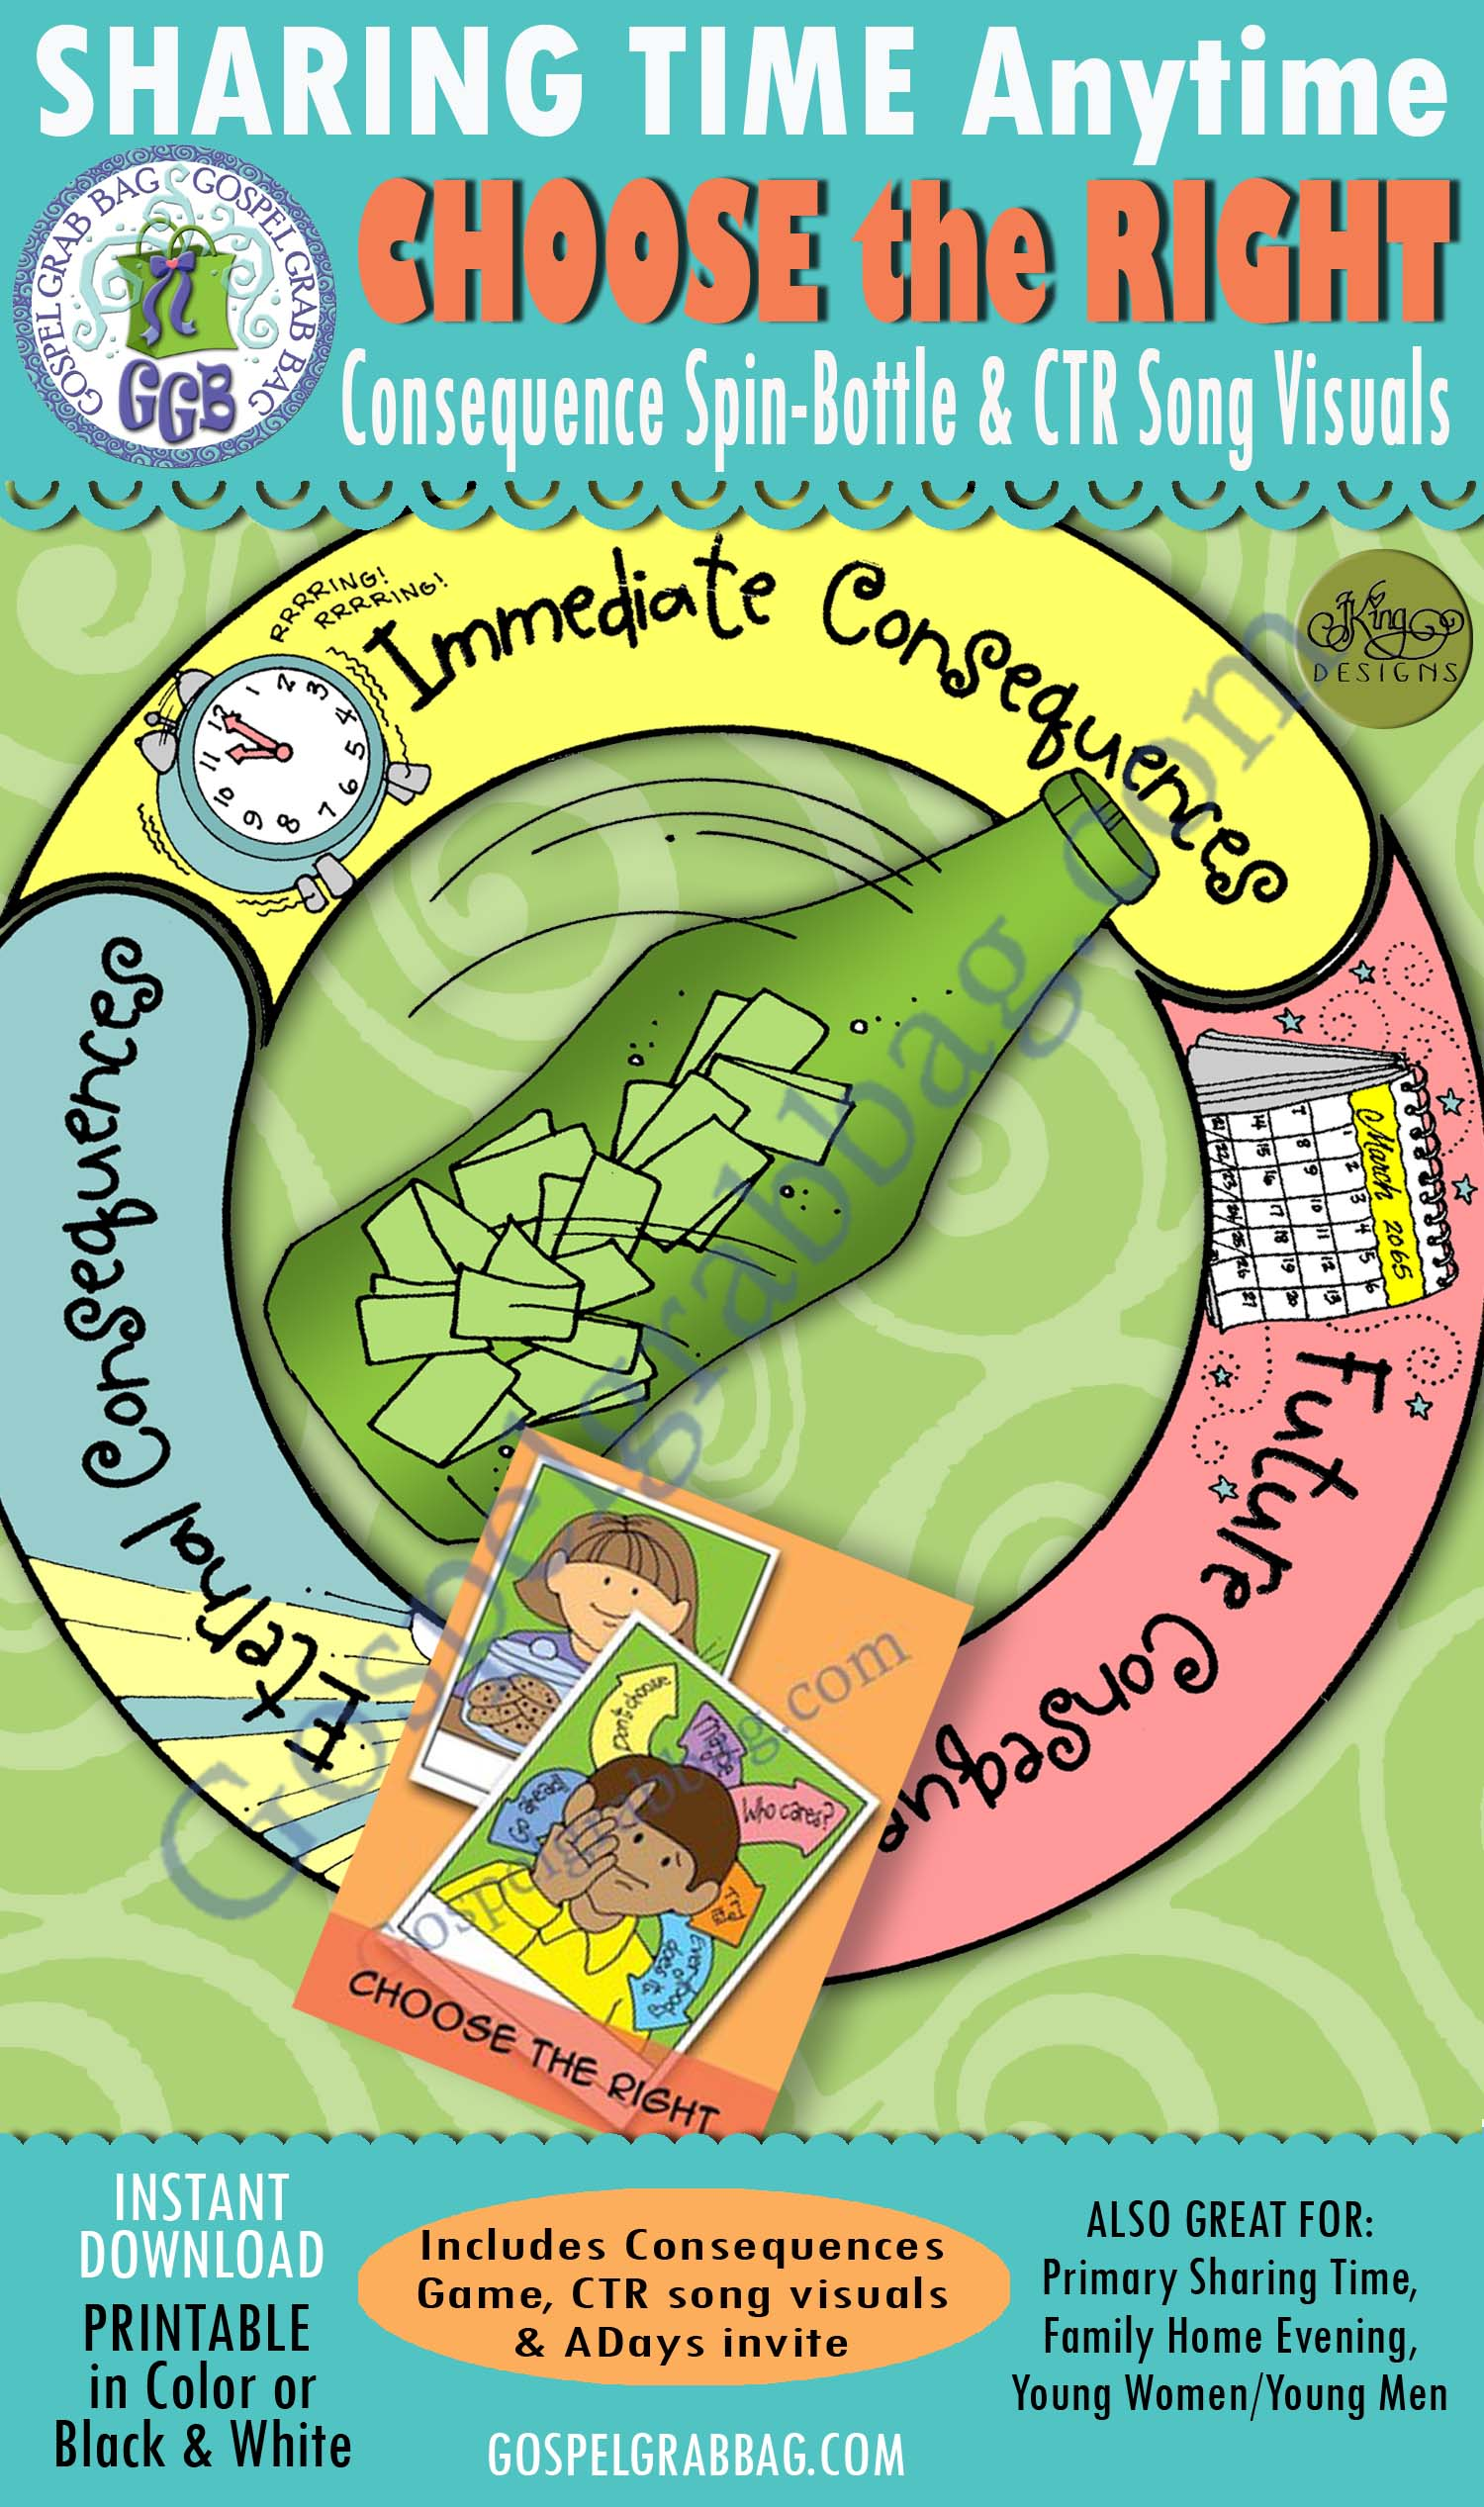 Choose The Right Lds Lesson Choosing A Consequence Spin